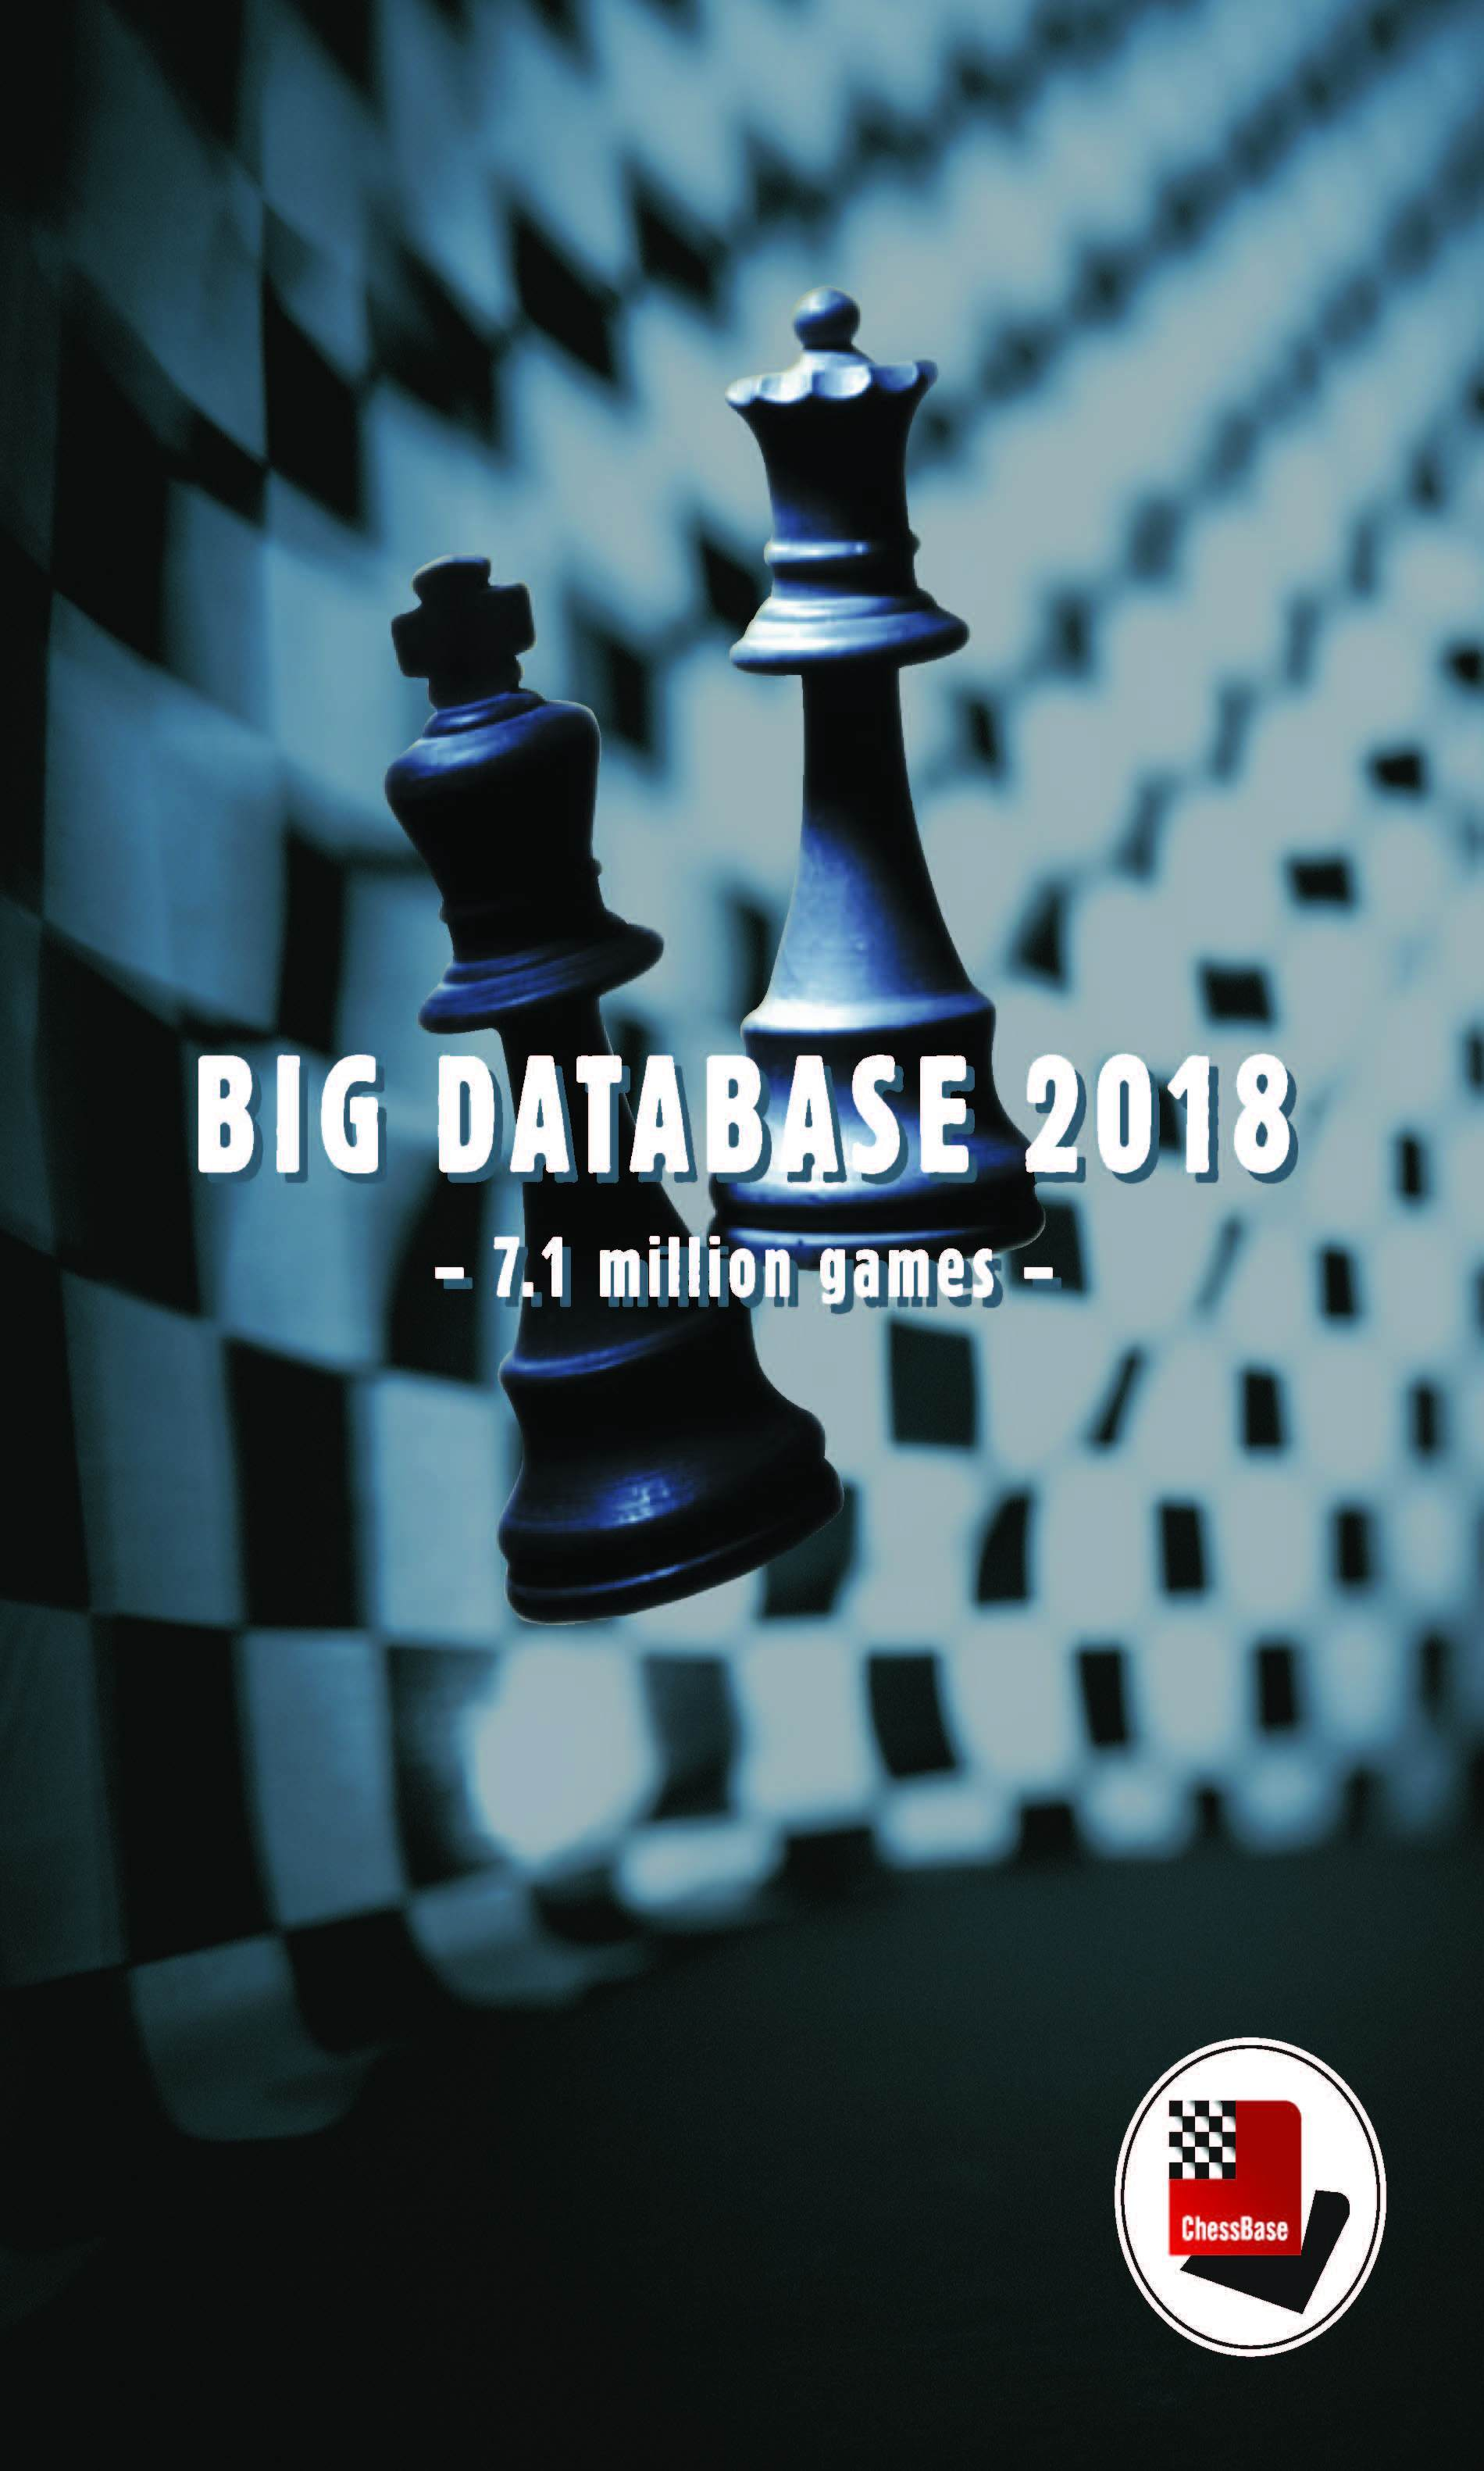 Big Database 2018 (DVD) - Chess CDs and DVDs